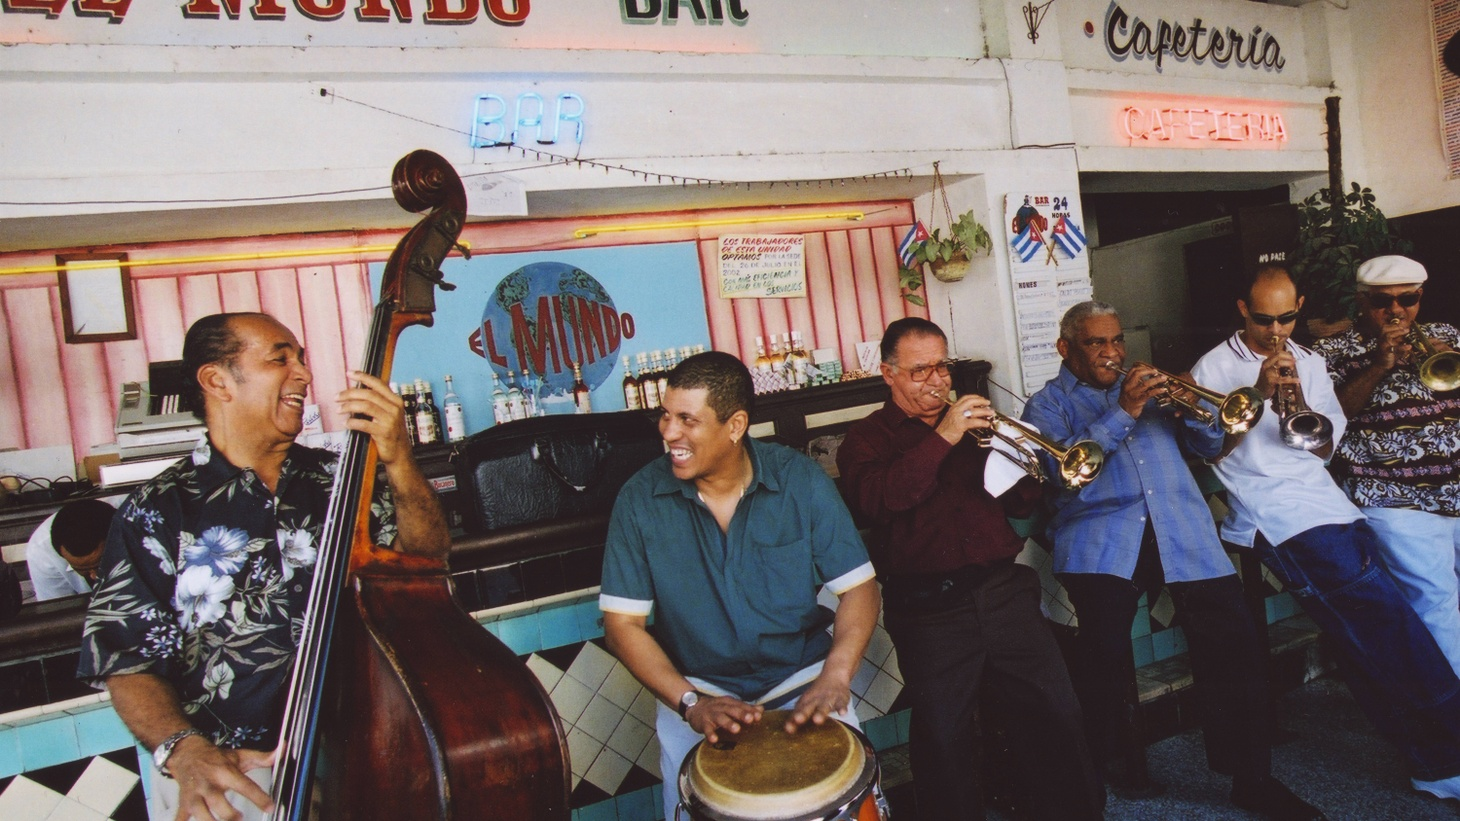 Almost two decades after the release of the Grammy-Award winning Buena Vista Social Club studio album, new songs have been unearthed from those fruitful sessions in Havana.